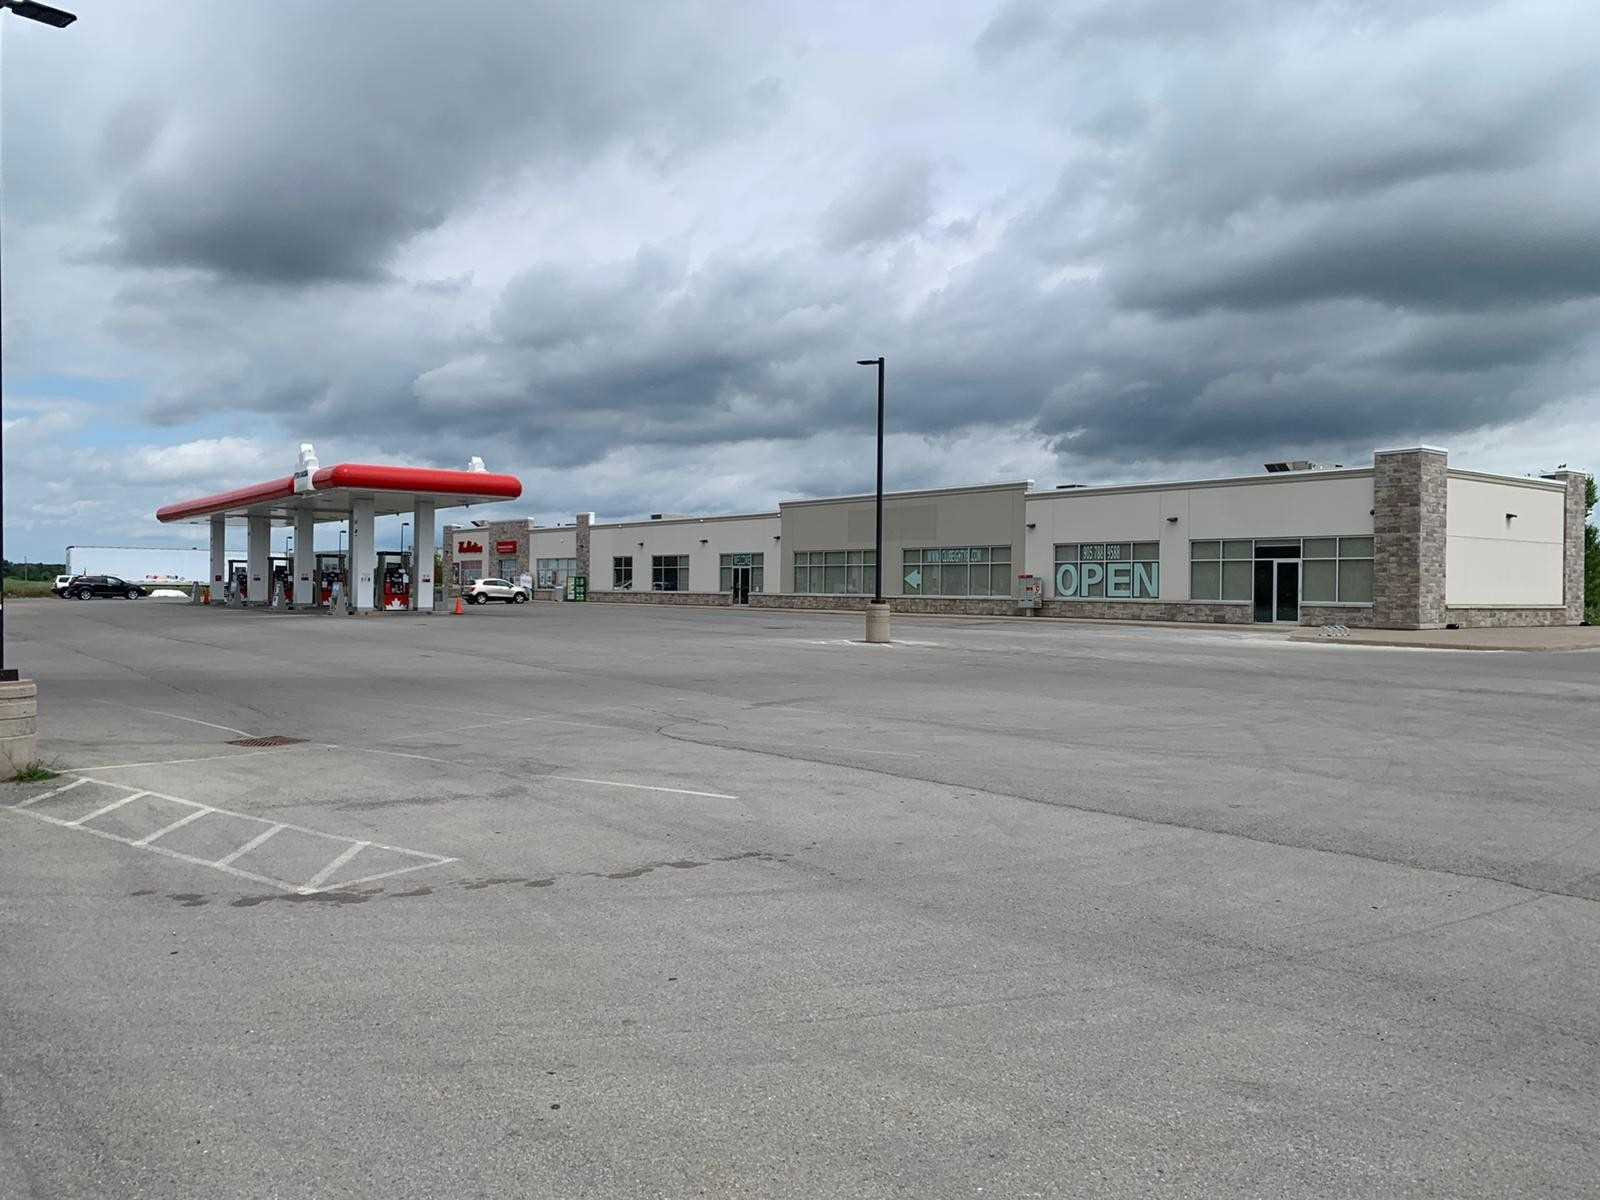 Vacant Commercial Space In A Busy Area. Perfect For Food Industry. Large Franchise With 2 Patio Spaces (Patio Approx. Area 400 Sq. Ft) Permitted. Perfect For Large Restaurants. Direct Access From Hwy 406. Close To Walmart, Canadian Tire And Other Departmental Stores. Gas Station And Tim Hortons Already Exist In The Plaza. 25.00/Sq. Ft + Tmi $11 + Hst.